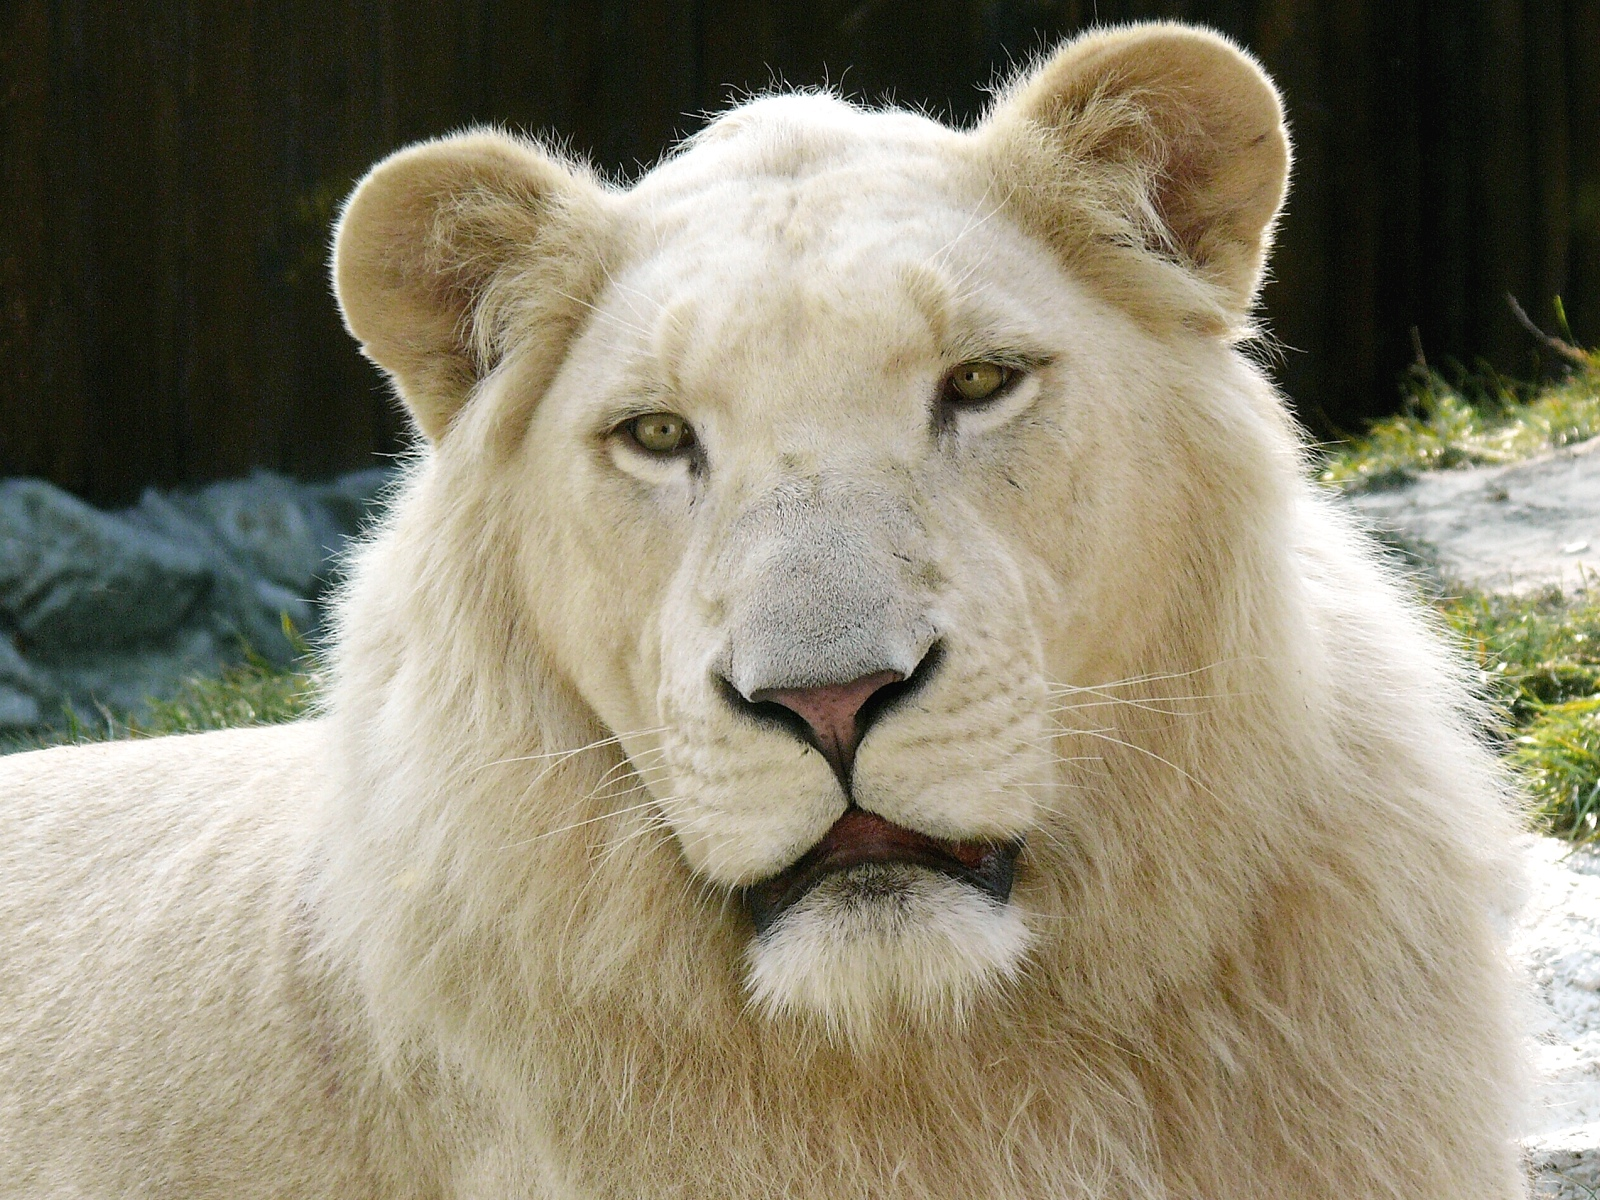 https://upload.wikimedia.org/wikipedia/commons/e/e7/White_Lion.jpg